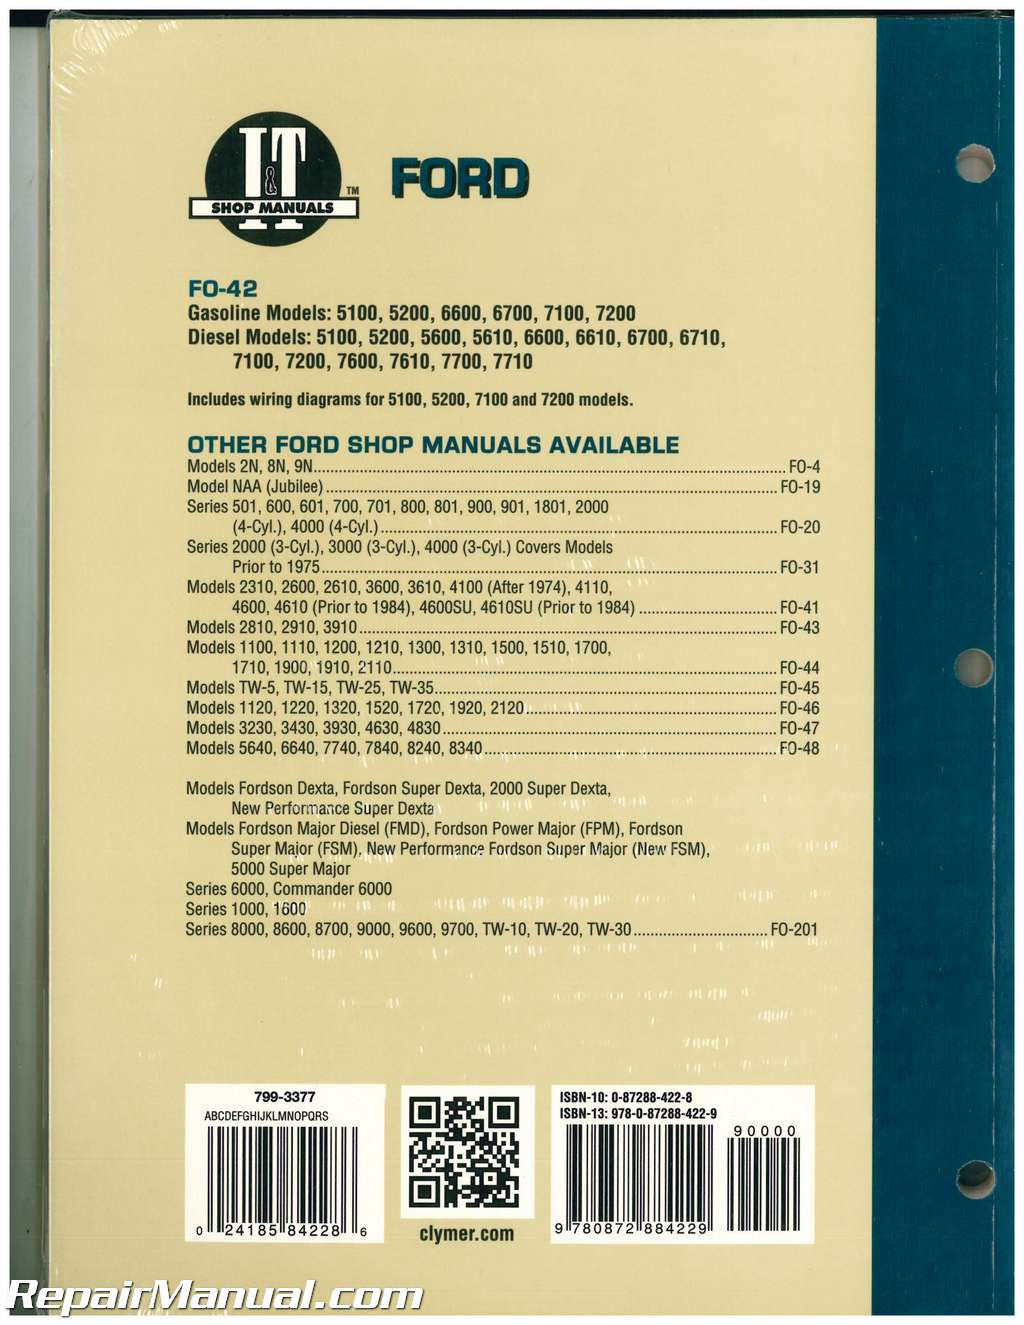 wiring diagram ford tractor the wiring diagram ford new holland 5100 5200 5600 5610 6600 6610 6700 6710 7100 7200 wiring diagram